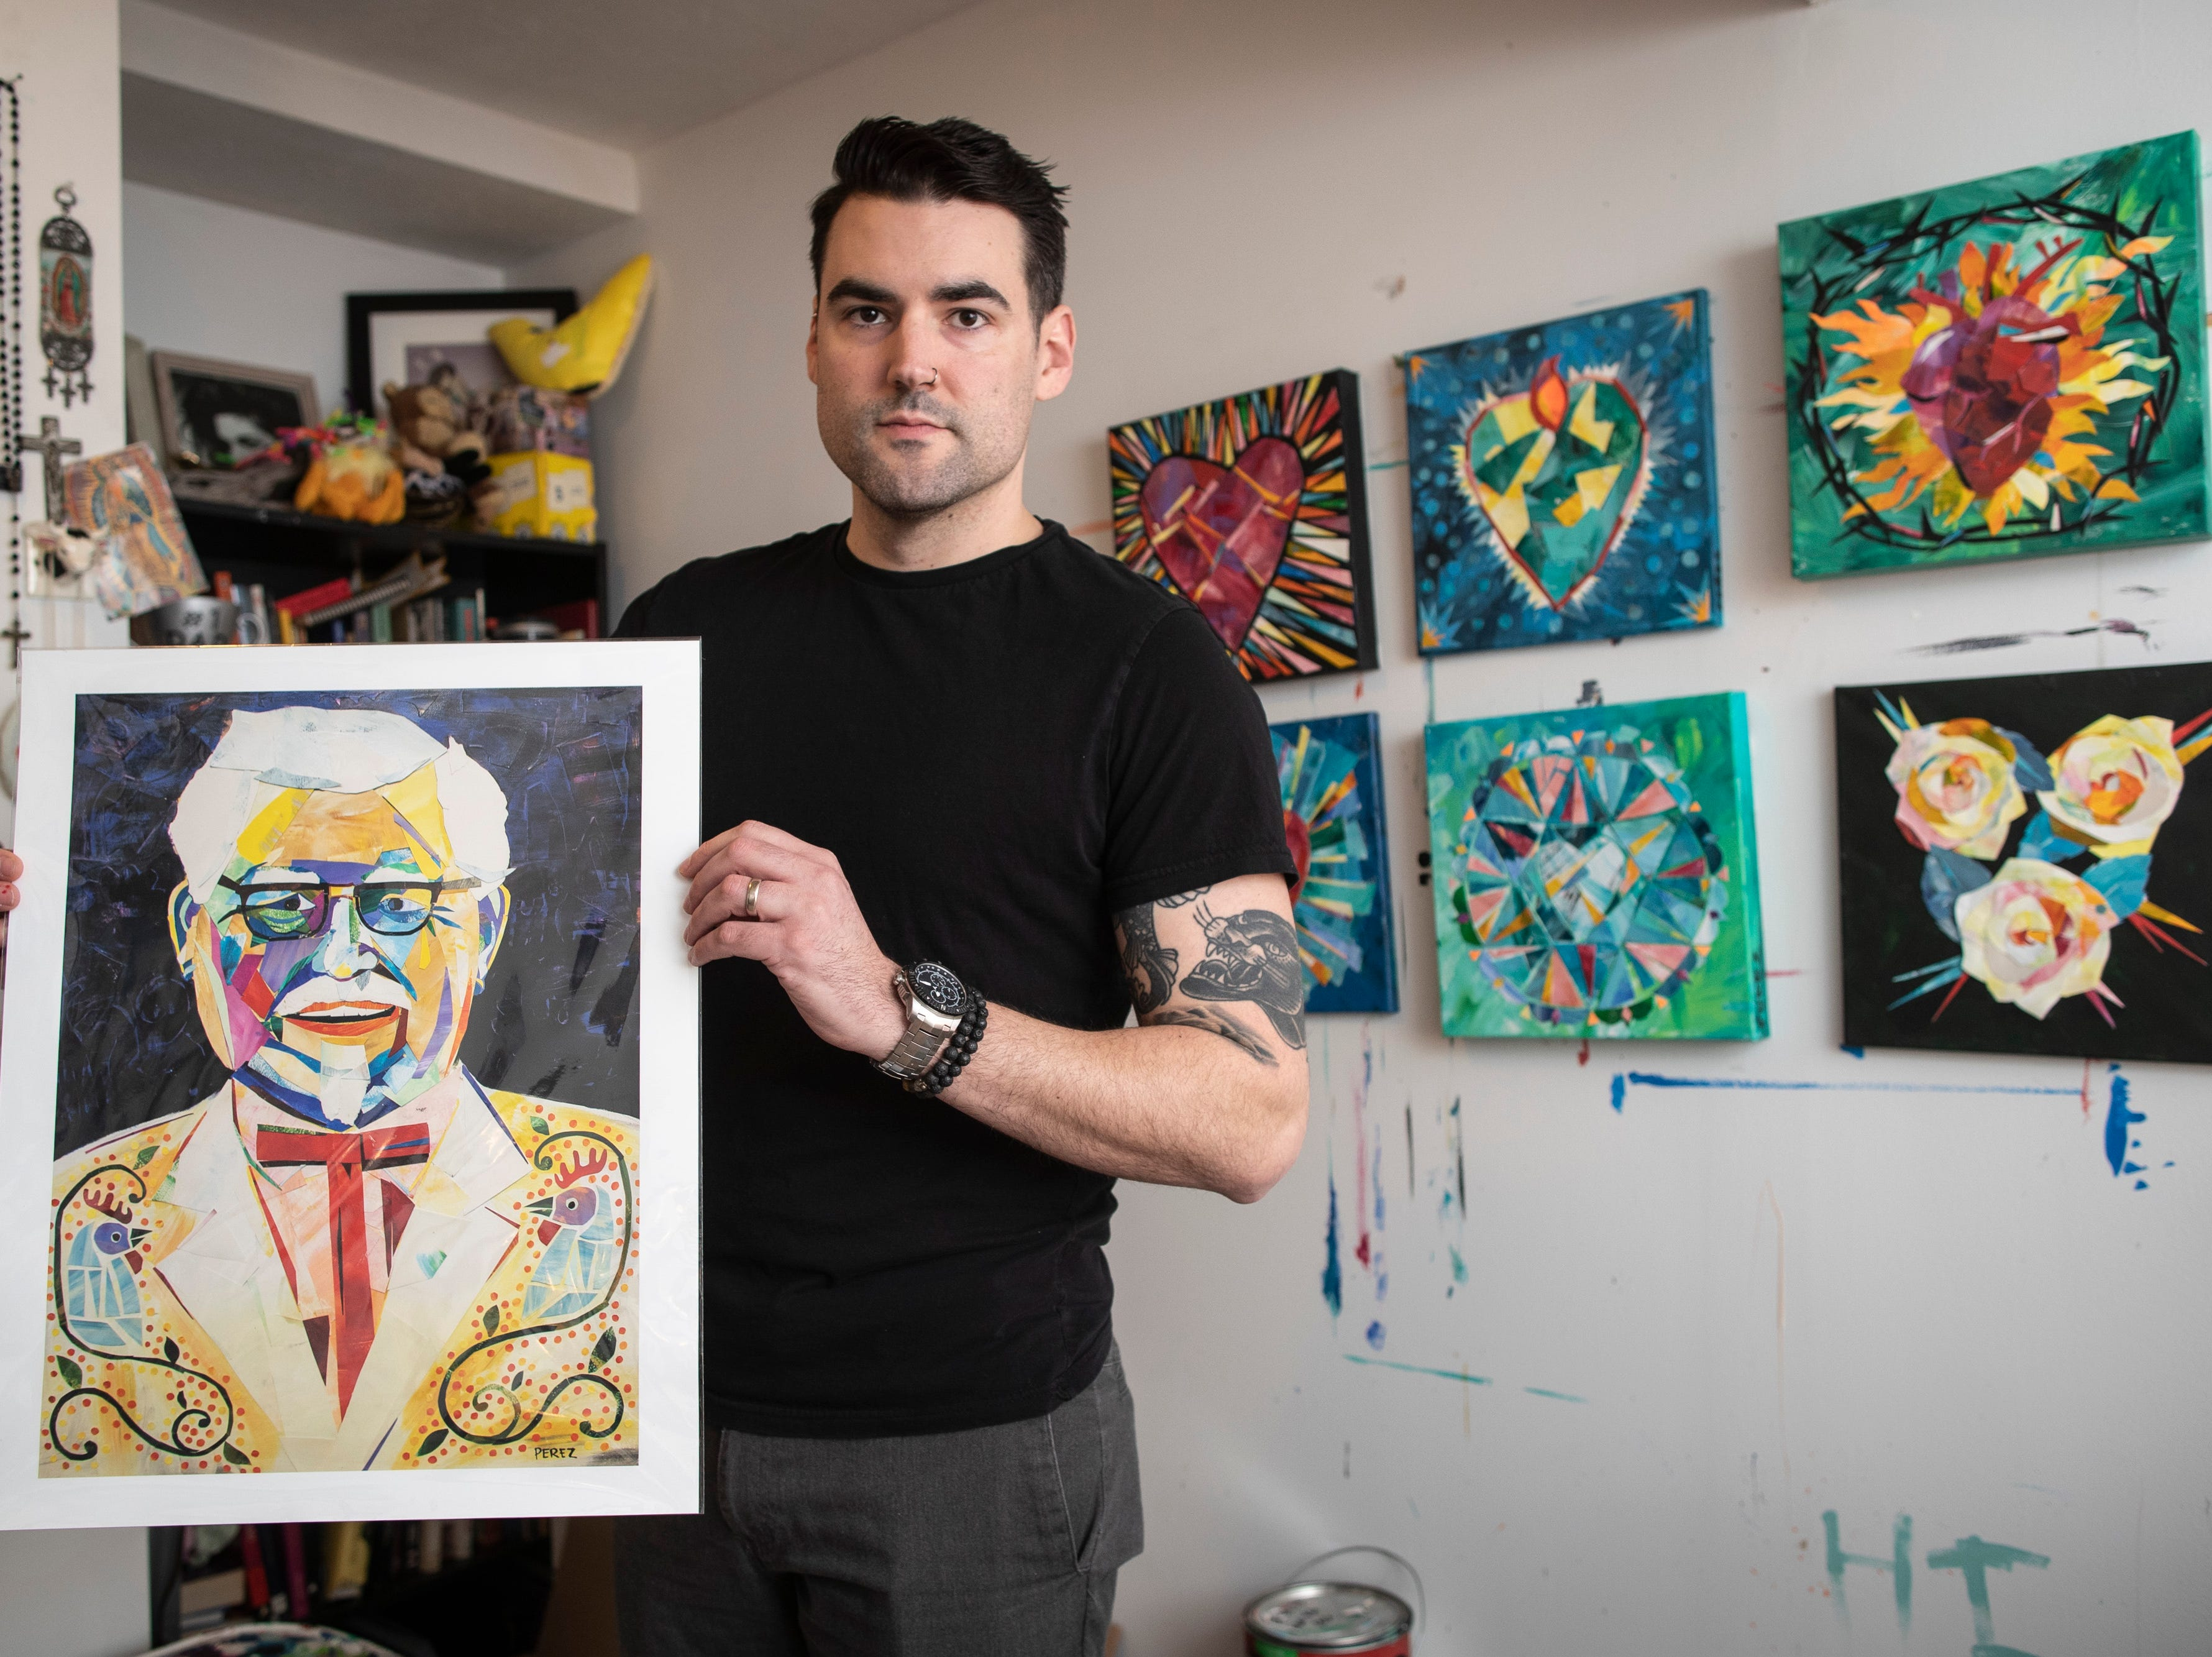 """Louisville artist Andy Perez holds a print of his colorful painted collage portrait of Kentucky Fried Chicken founder Colonel Sanders in his home studio. The artwork was recently featured in a french KFC commercial. """"I was interested in the colonel because of the story of his perseverence,"""" Perez said. """"He was told no so many times and now it's one of the most famous chicken recipes in the world."""" March 11, 2019"""